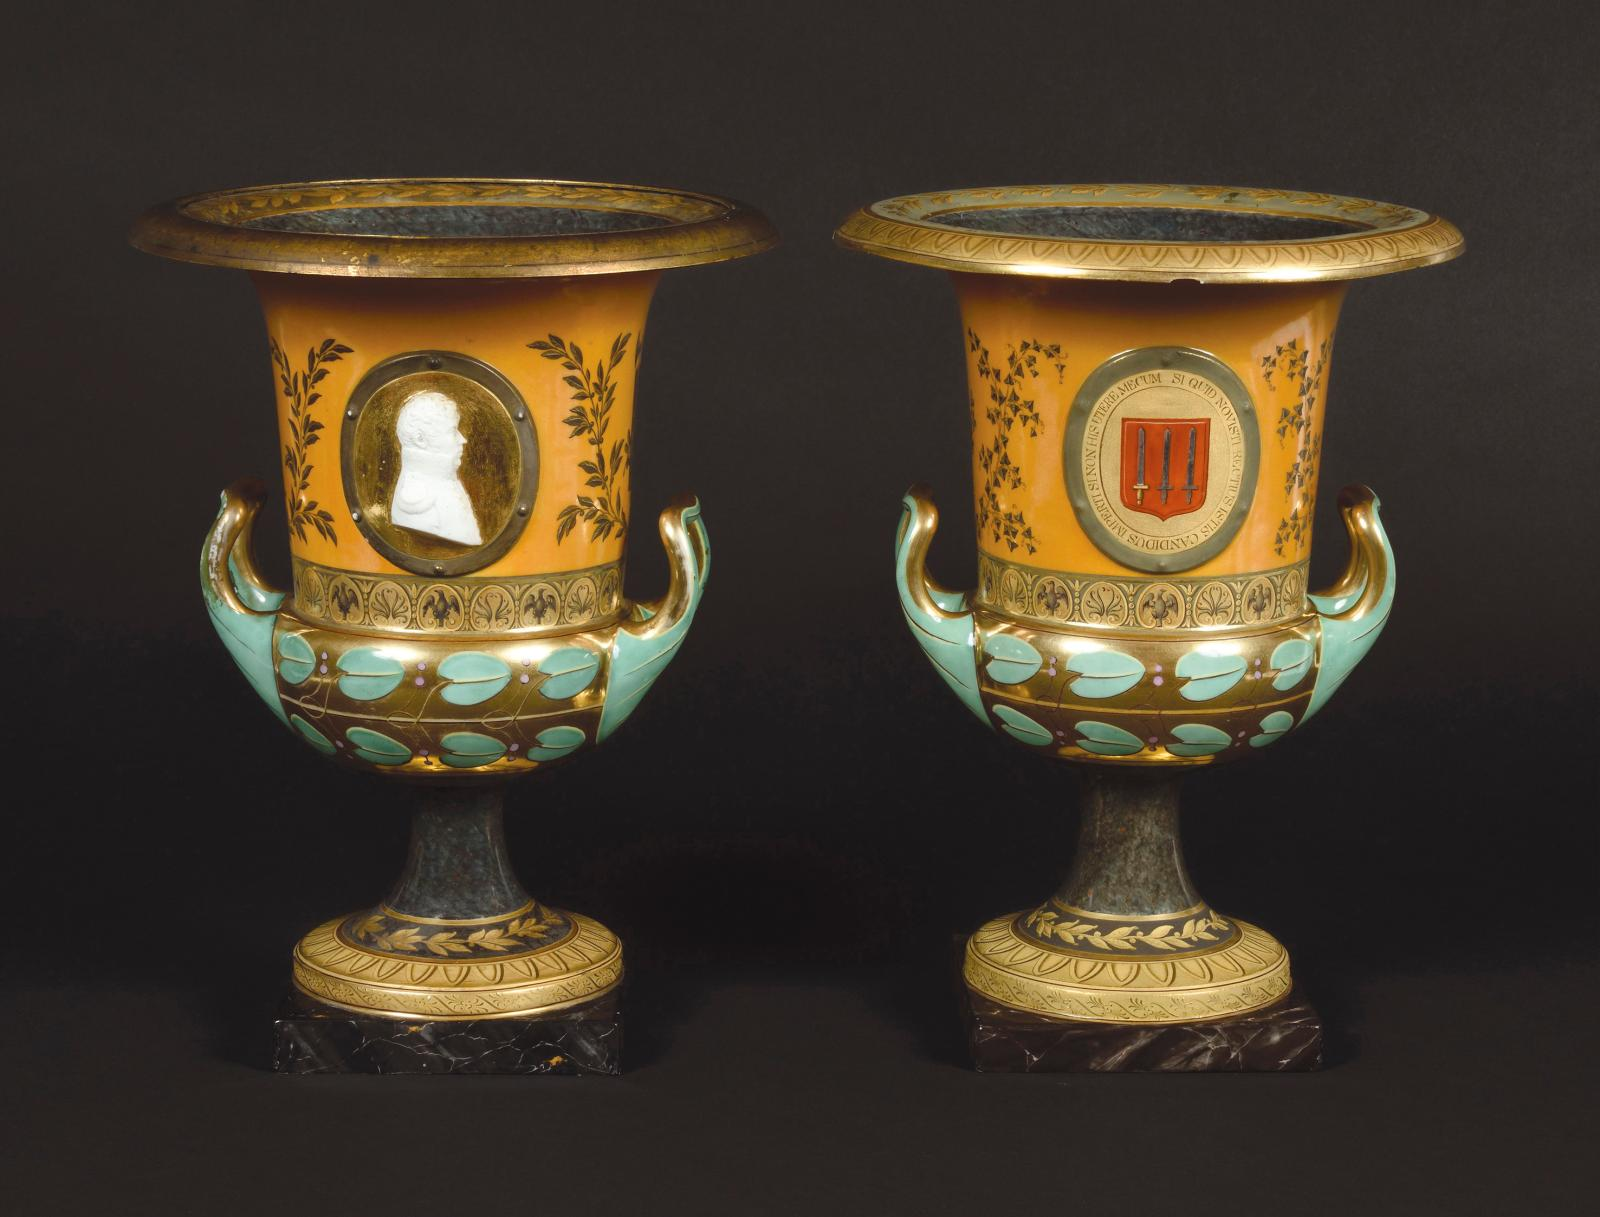 """Berlin, Empire period, pair of porcelain krater-shaped vases called """"Redensche Vase no. 0"""", embellished with biscuit bas-relief portraits"""